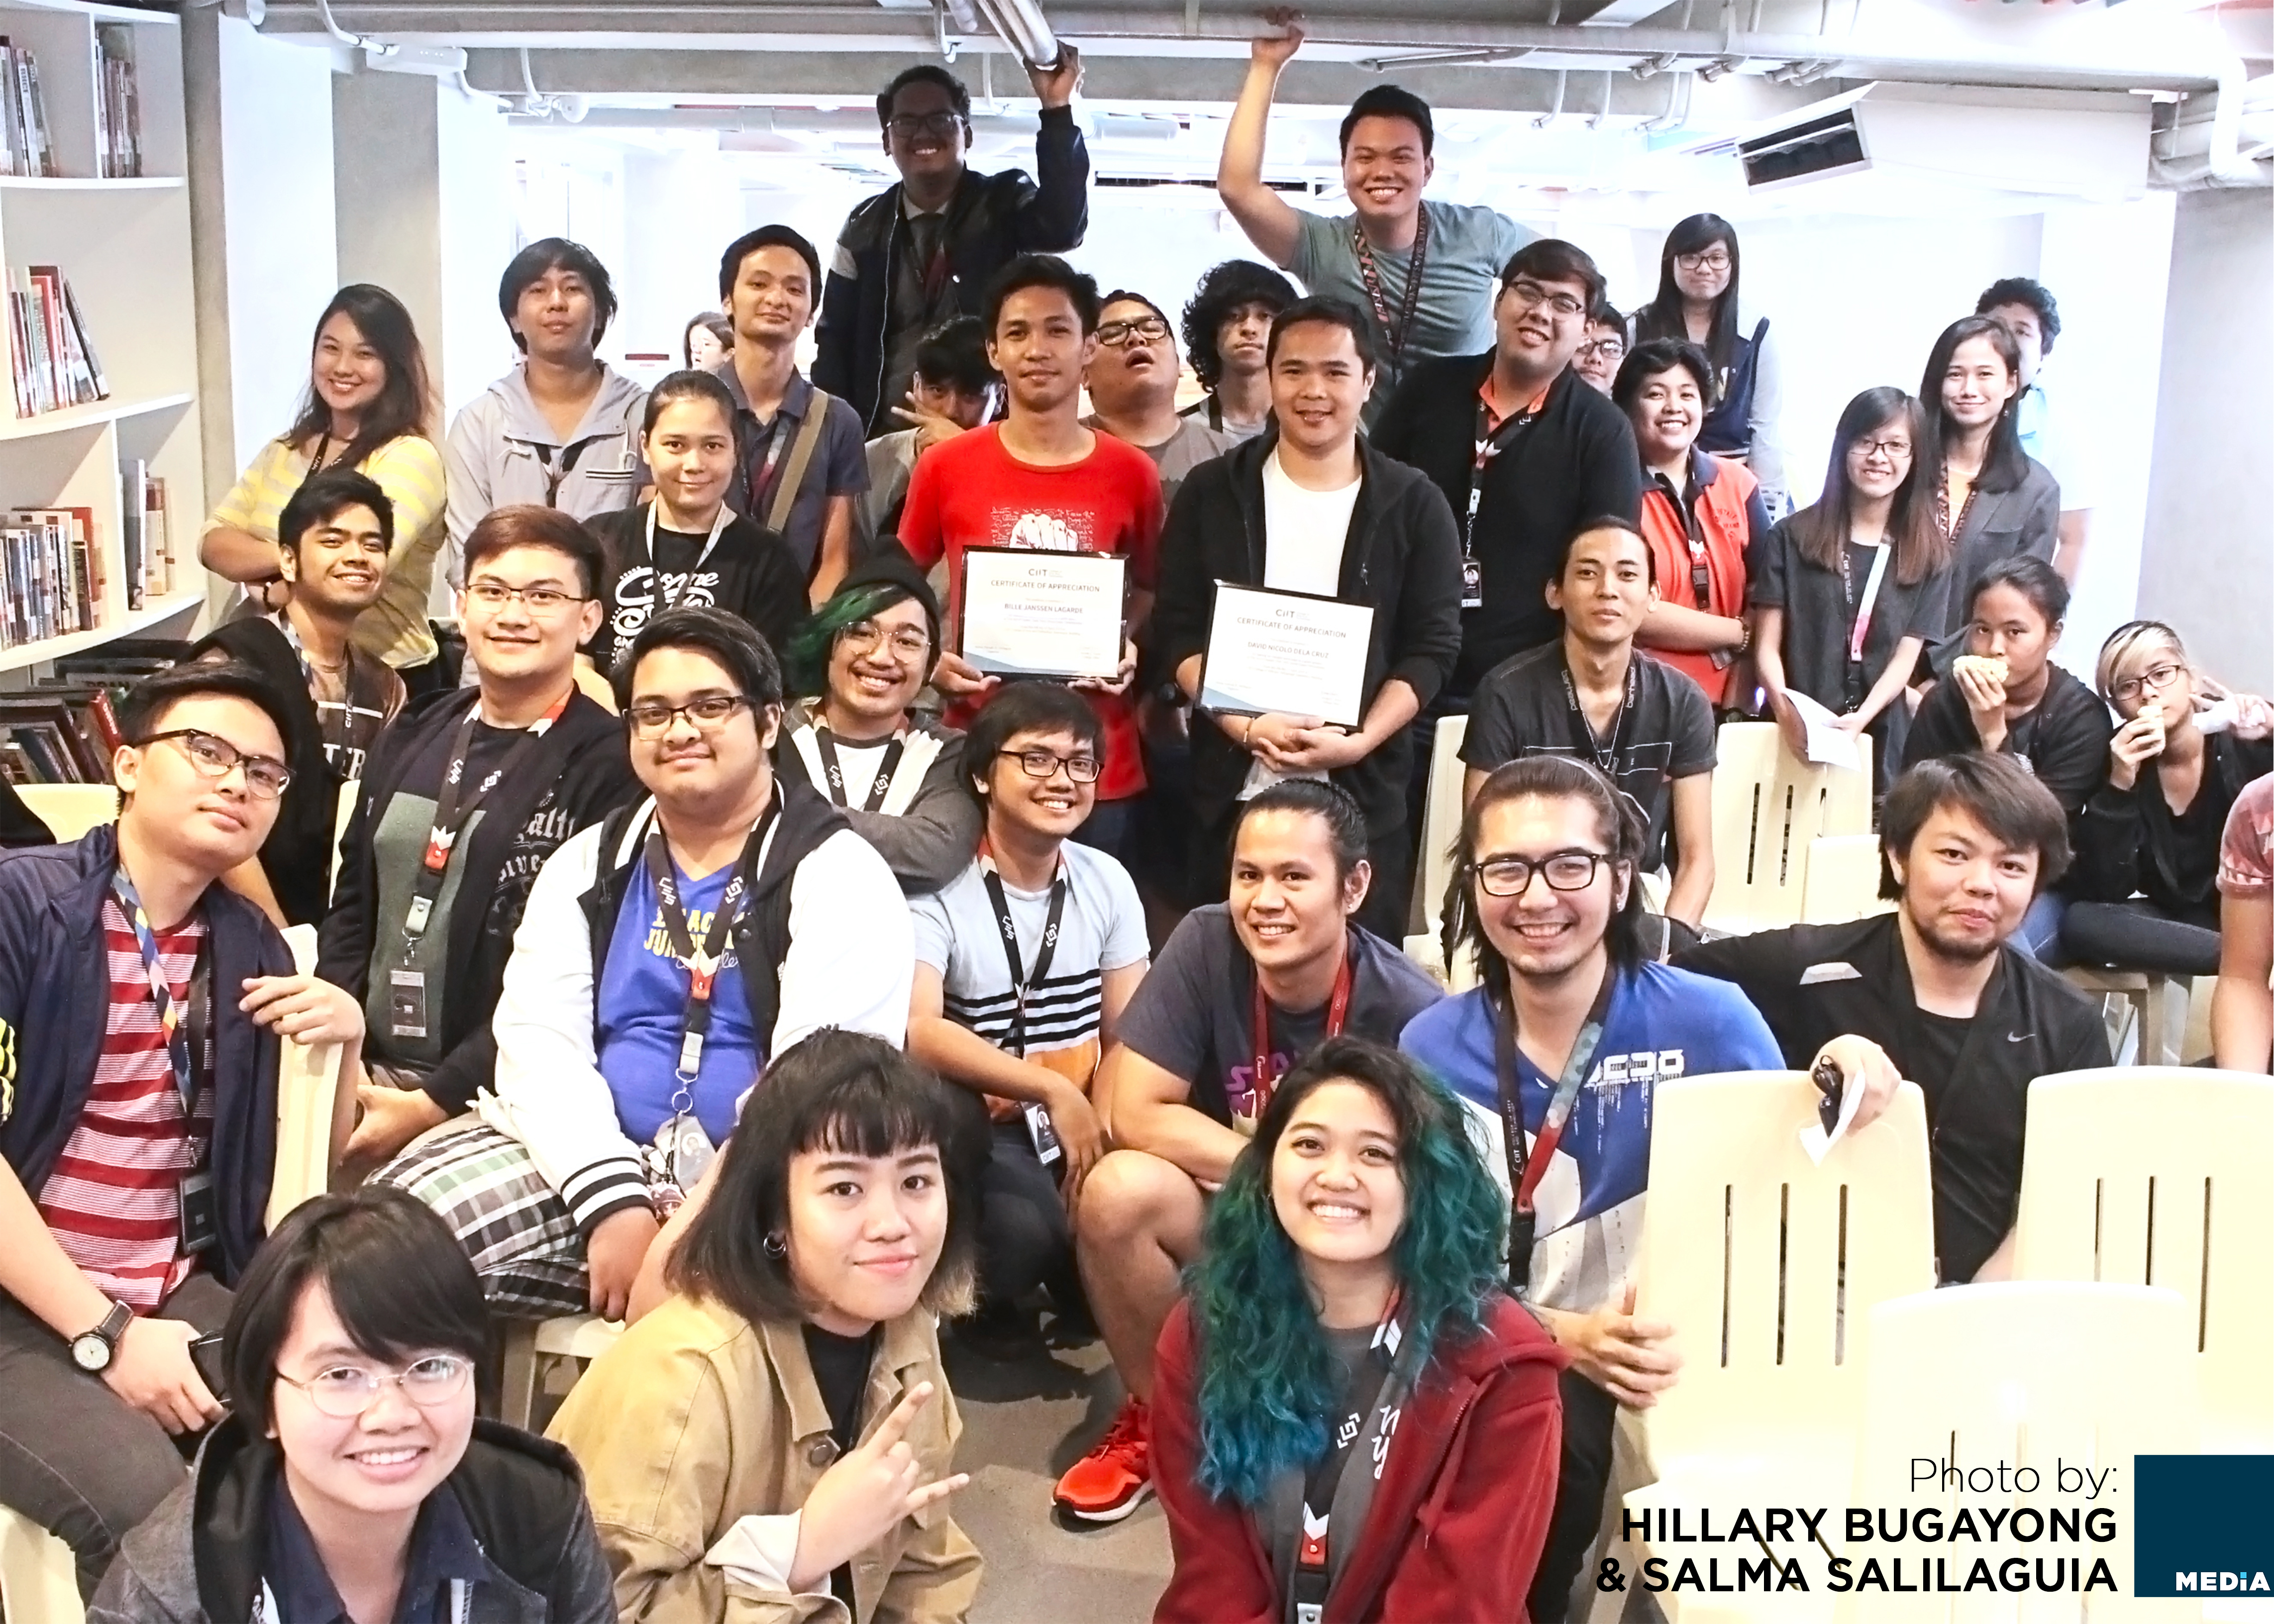 a group picture of the attendees as CIIT holds seminar about game development industry